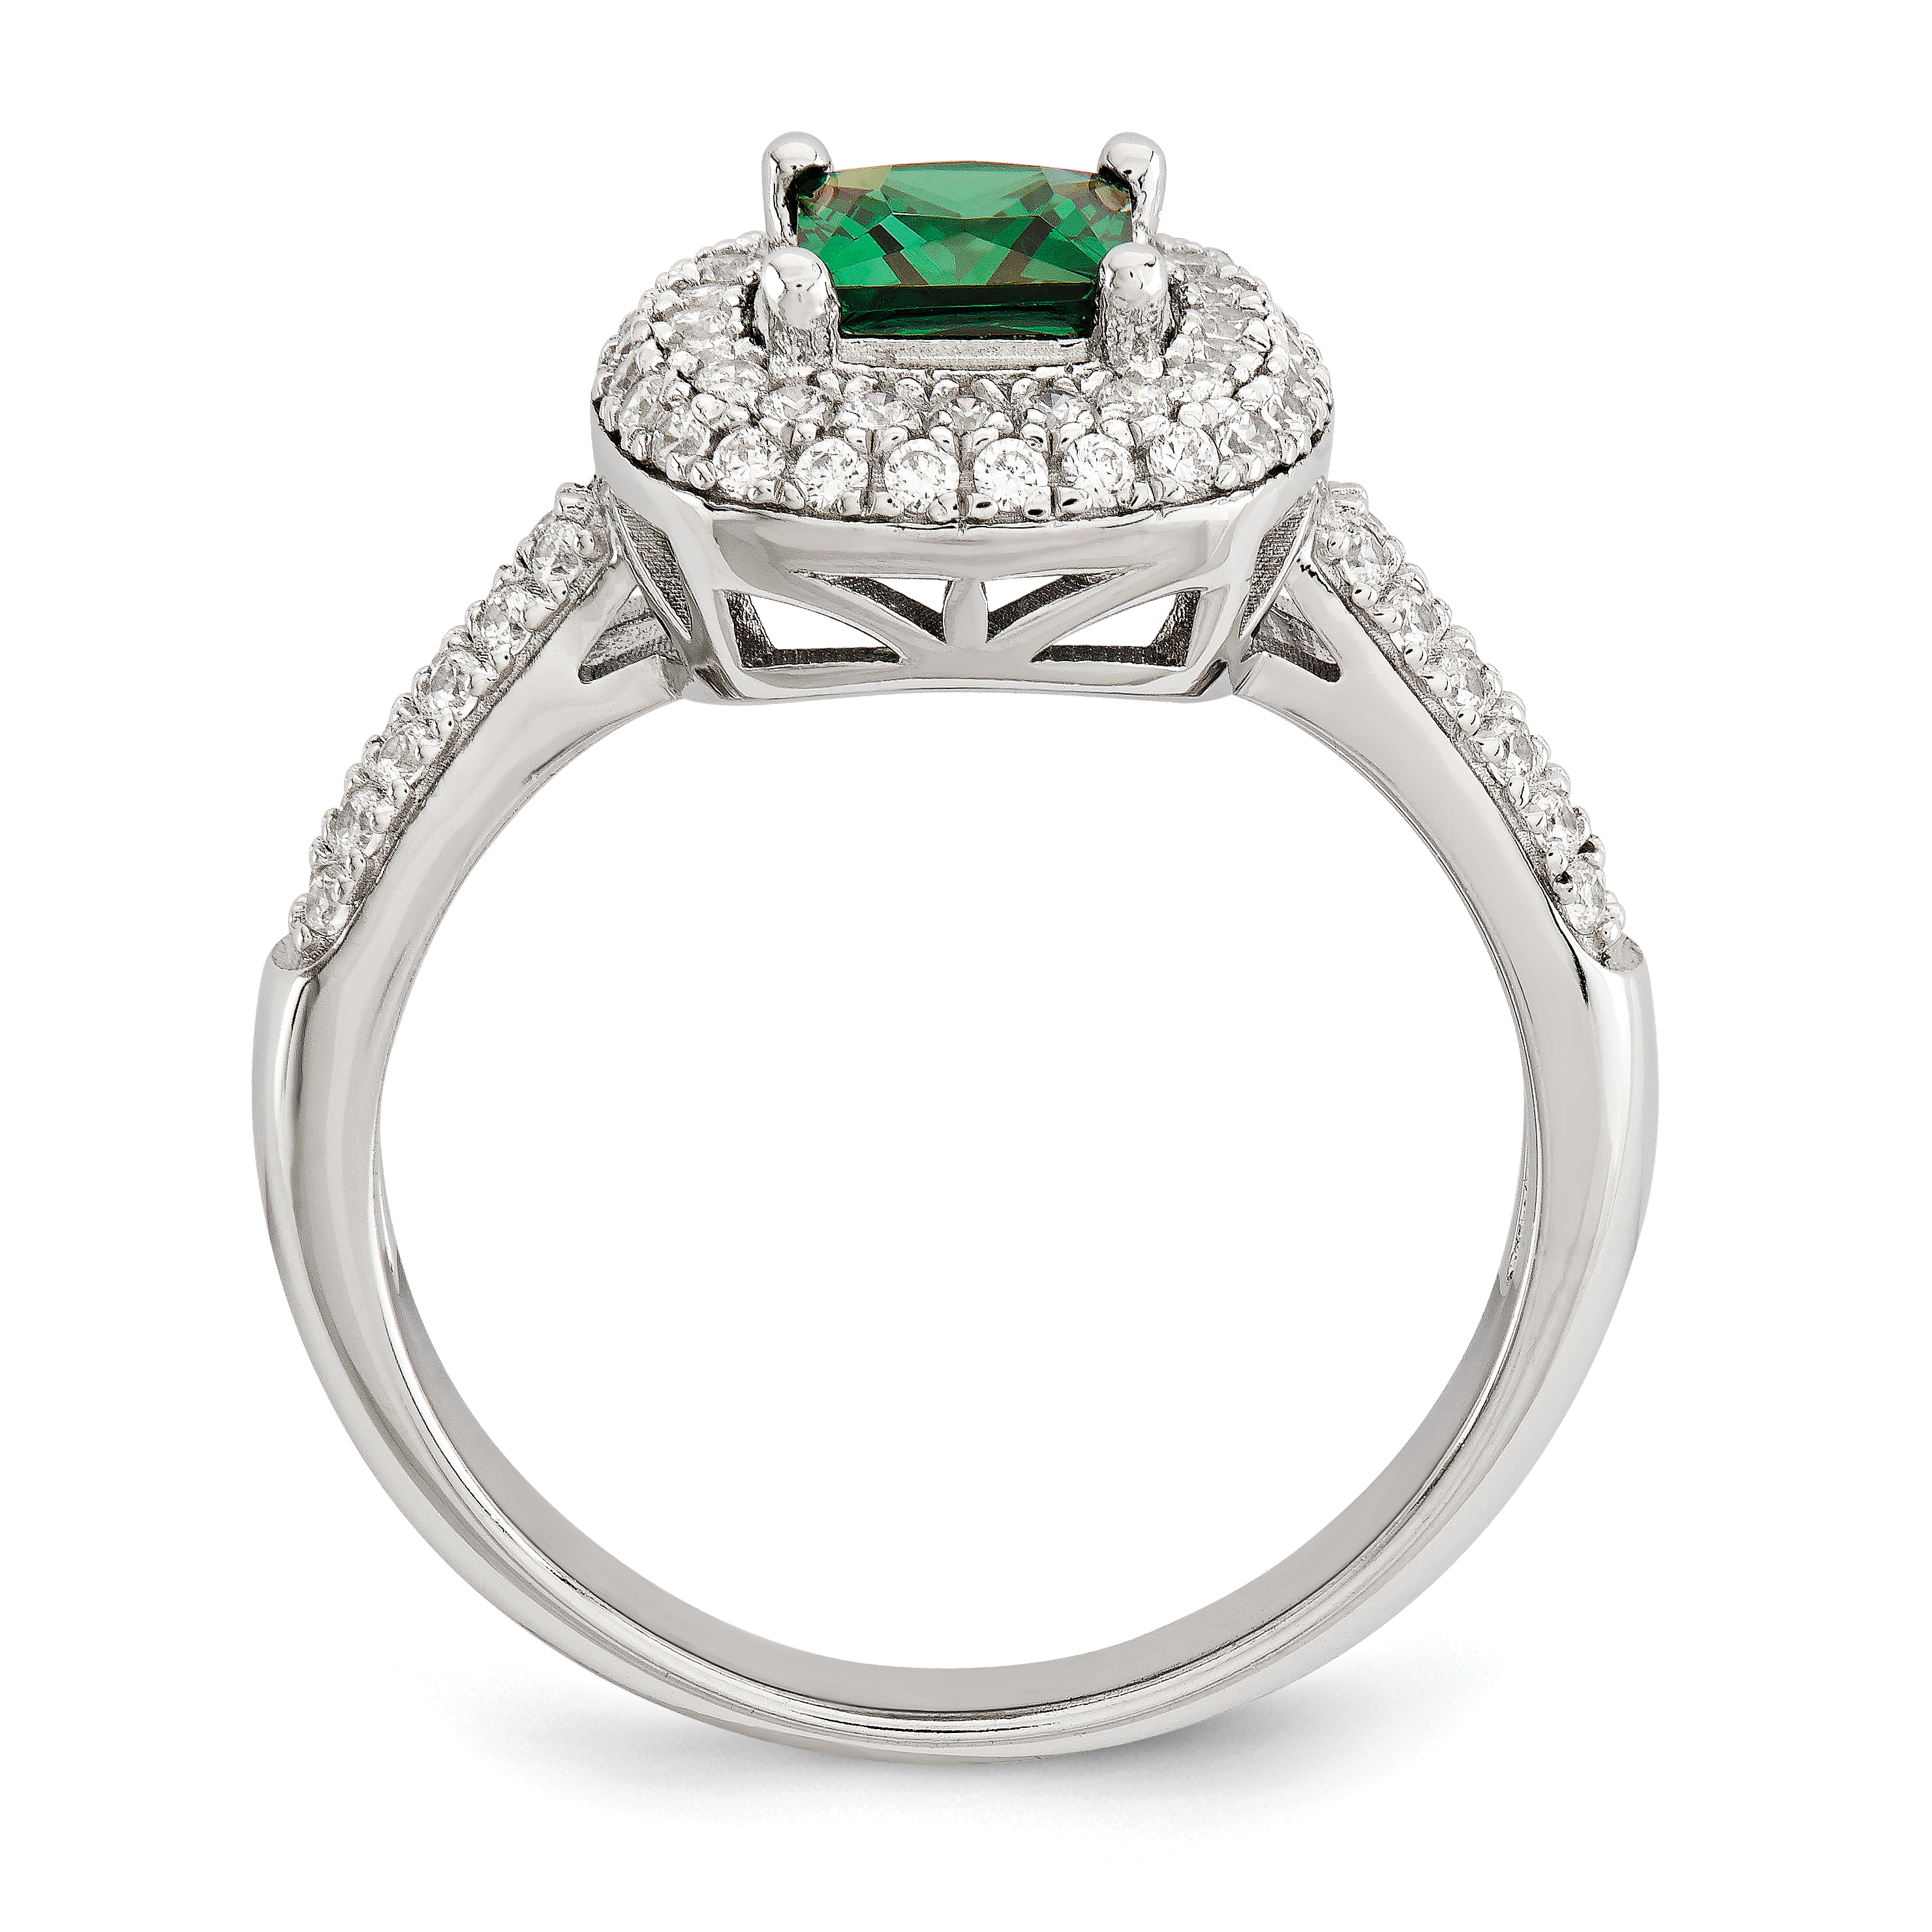 925 Sterling Silver White Green Cubic Zirconia Cz Band Ring Size 6.00 Fine Jewelry Gifts For Women For Her - image 2 of 3